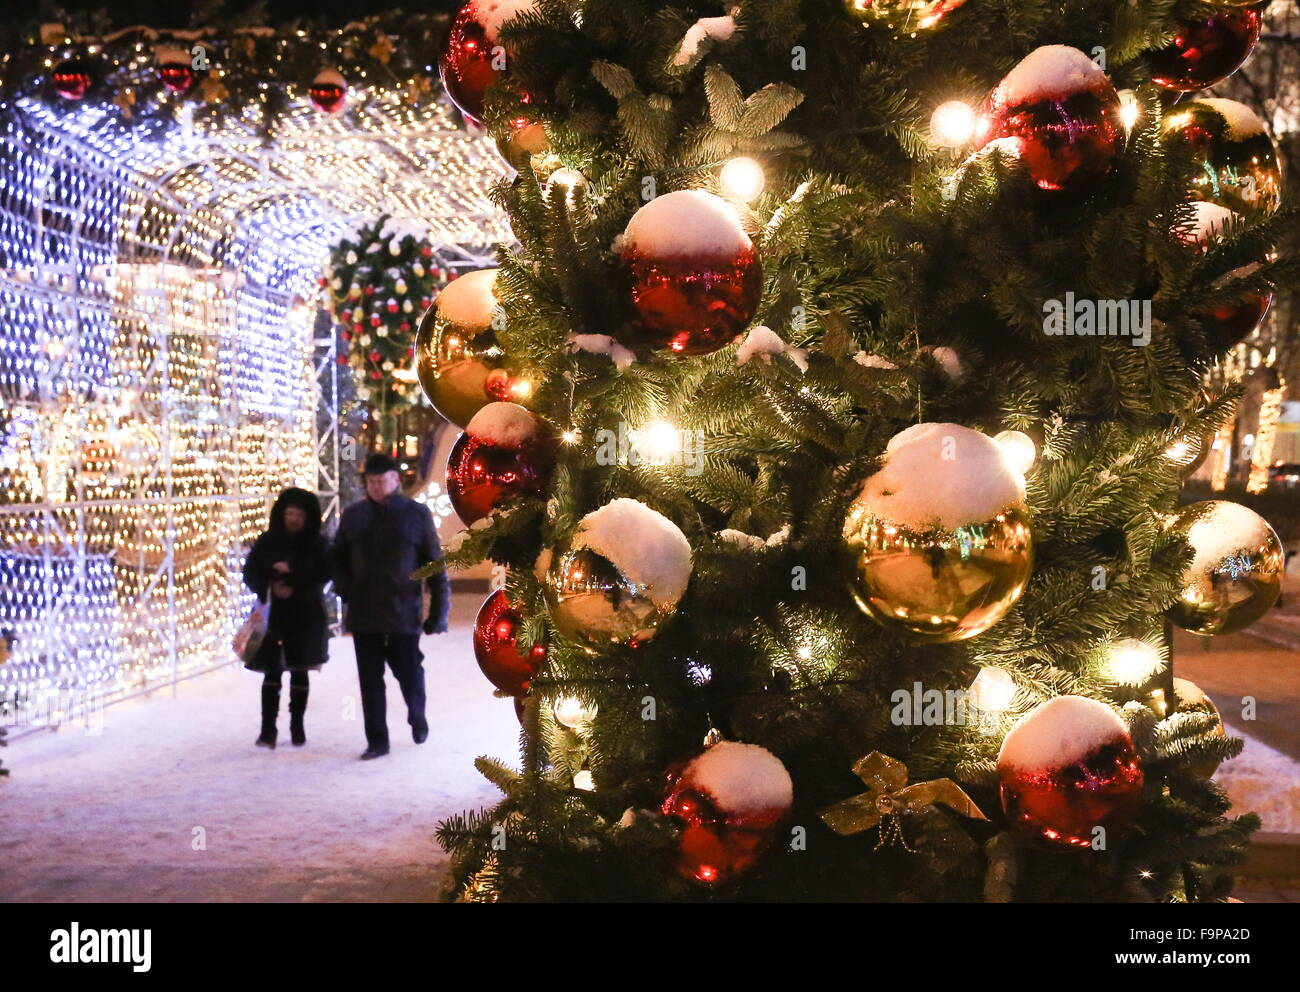 Moscow, Russia. 17th Dec, 2015. People walking in Tverskoy Boulevard decorated for the upcoming holidays as part Stock Photo